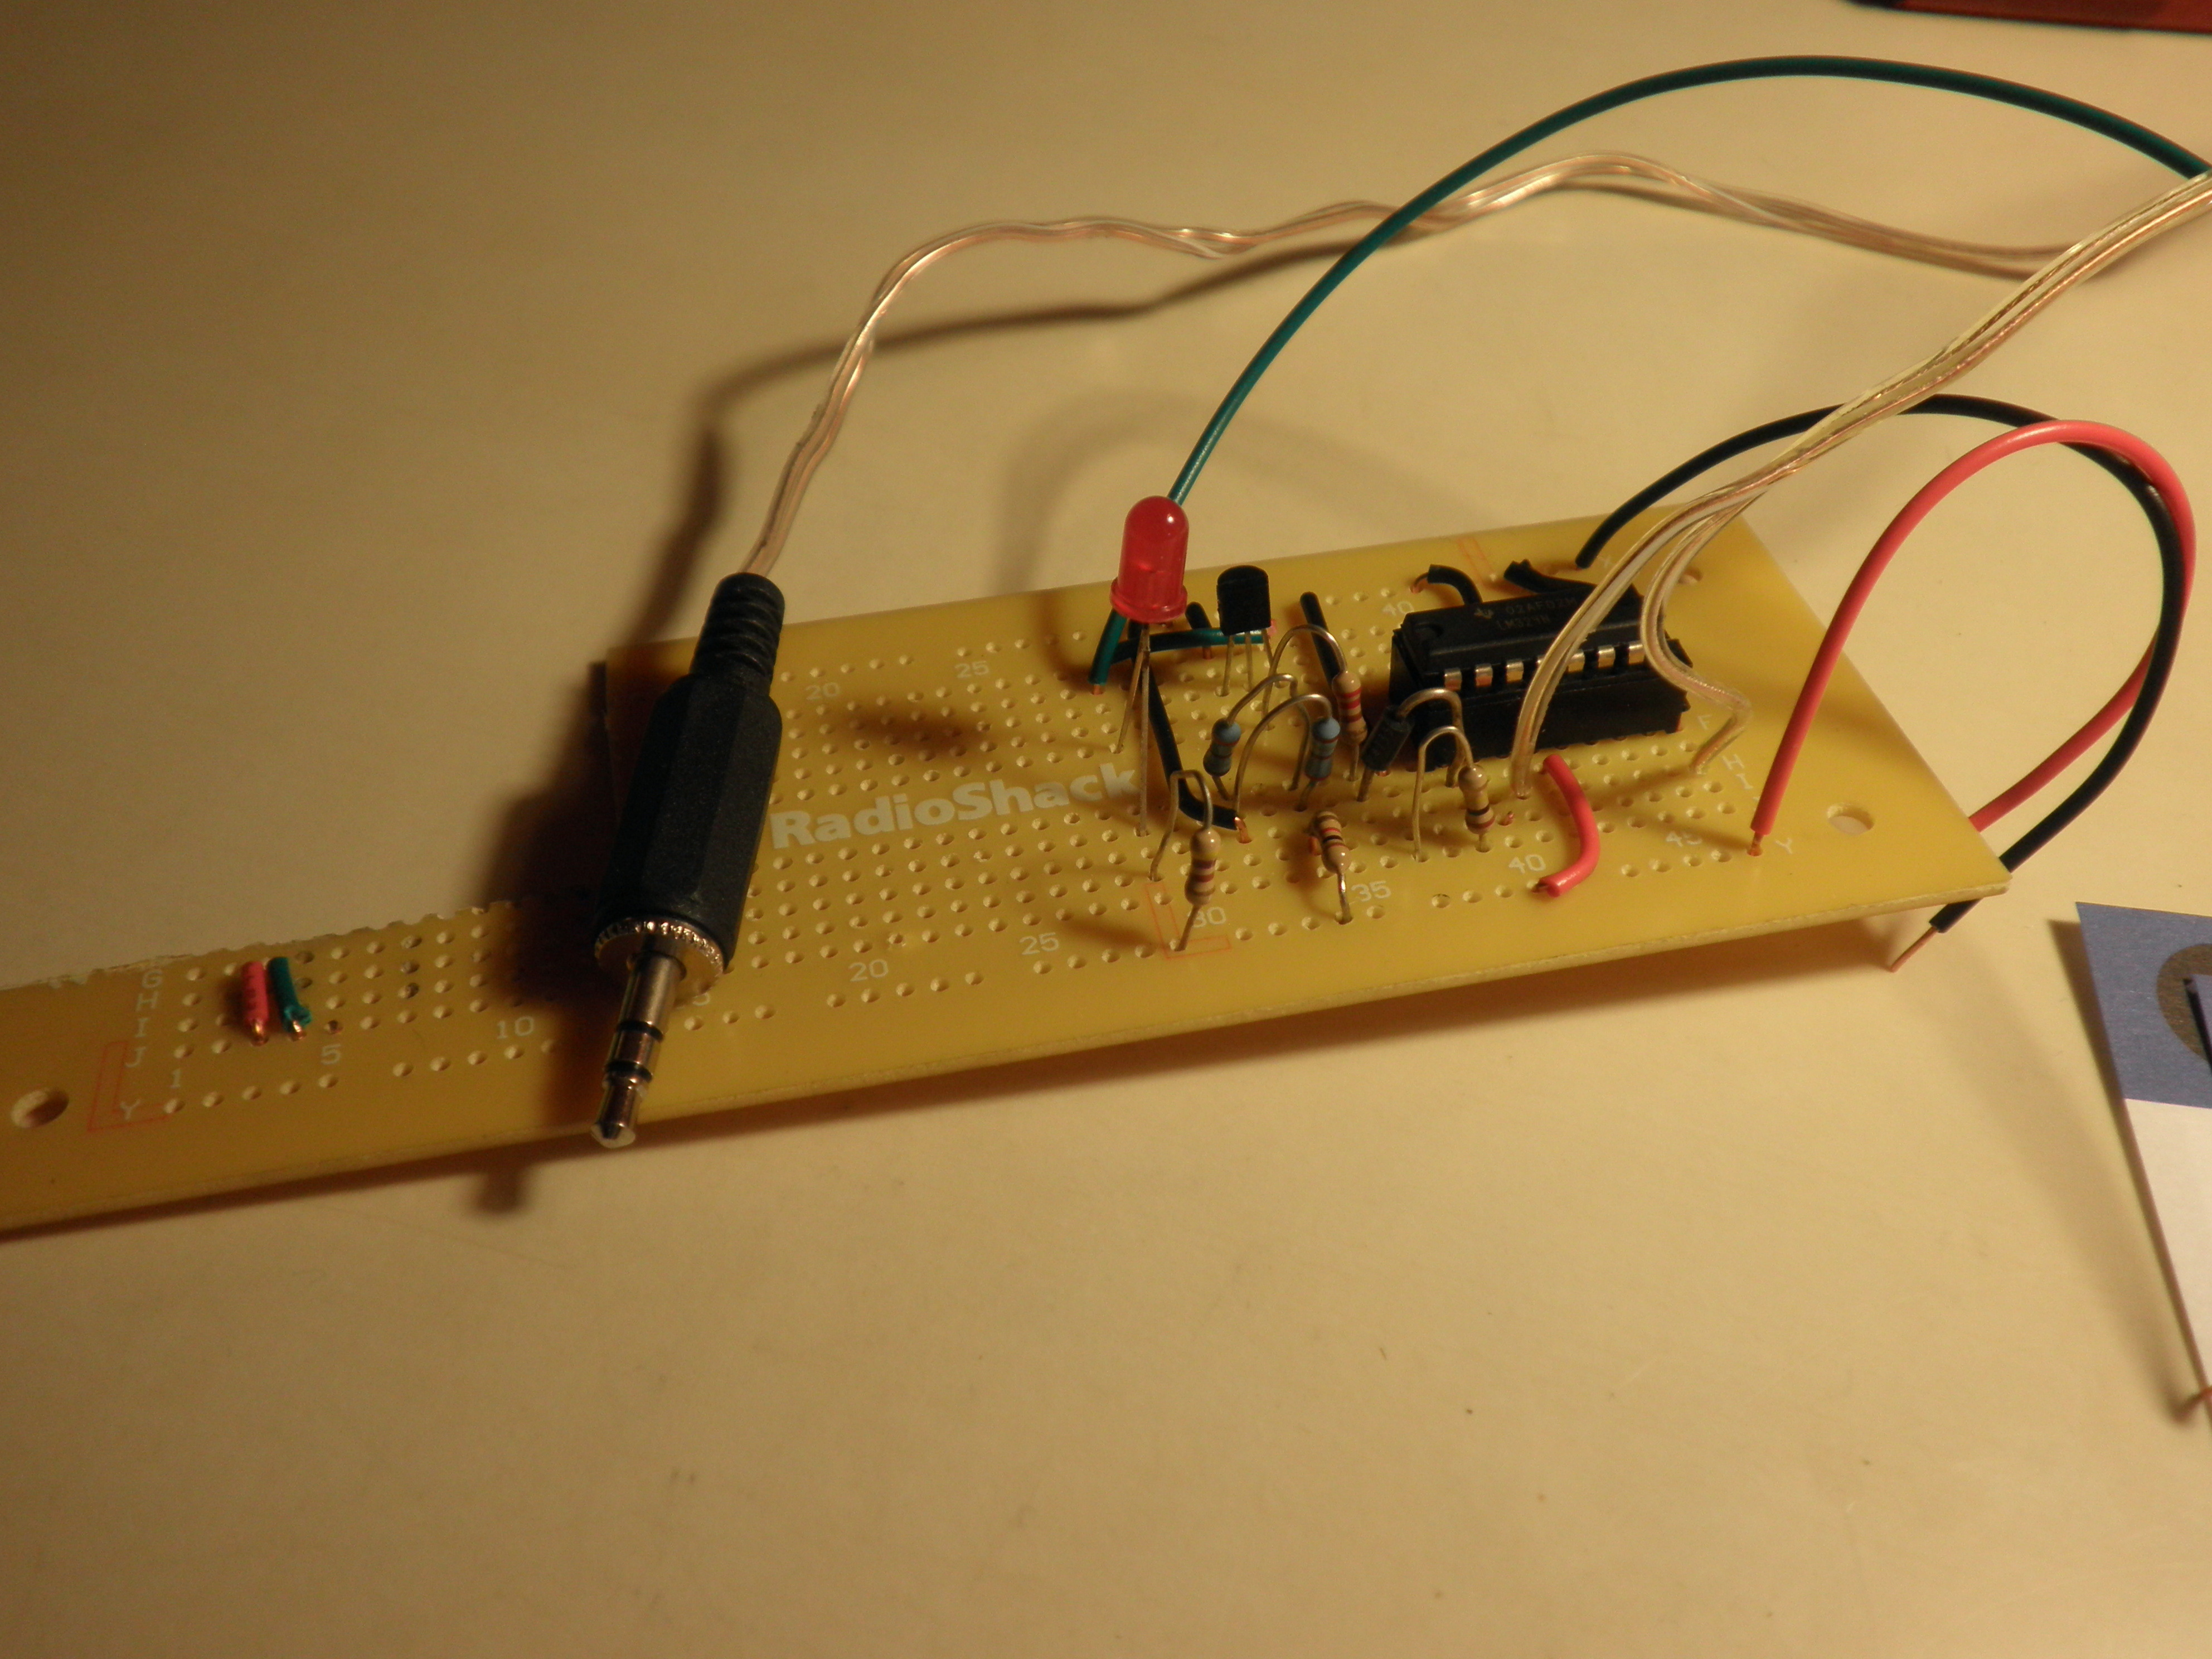 New Project: Using an Arduino to Process Fire Dept. Tones